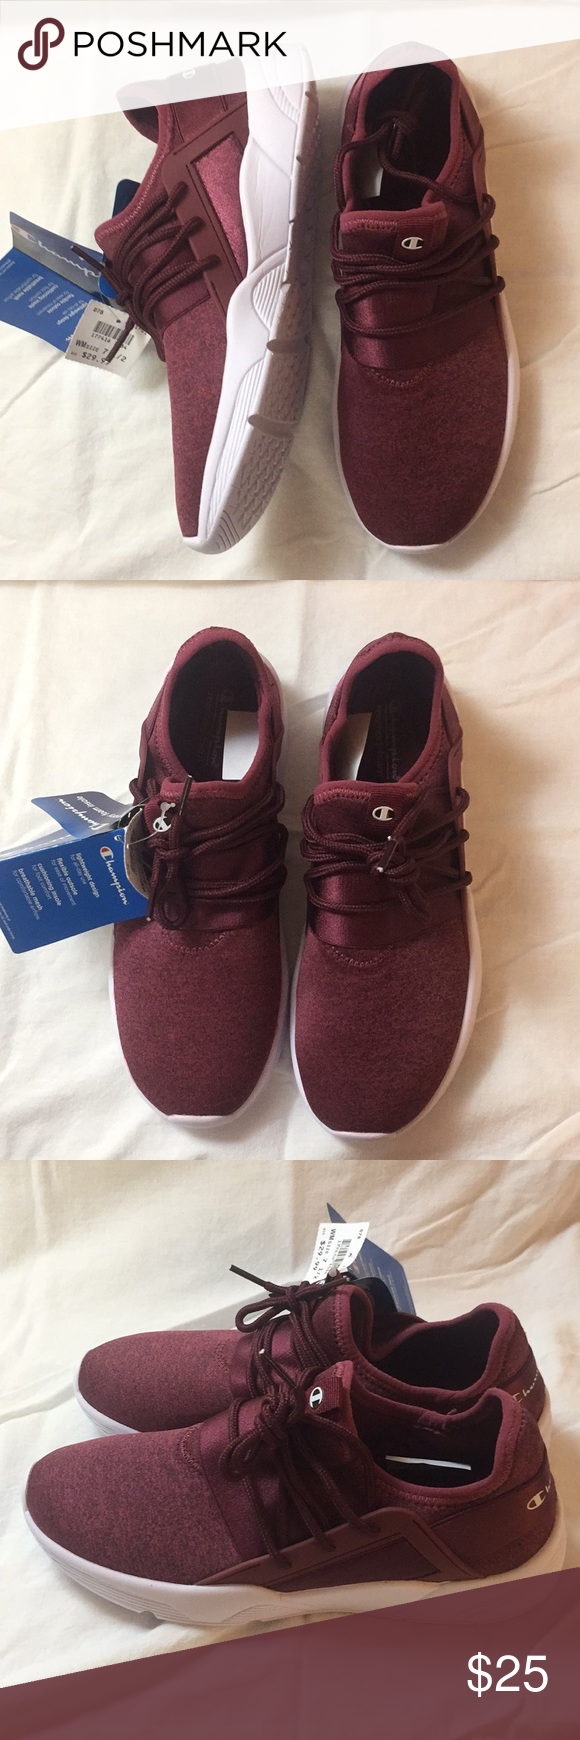 a393d47423417 Champion sneakers. Maroon color. Size 7 1 2. Maroon 7 1 2 Unused with tags  still on Champion Shoes Athletic Shoes